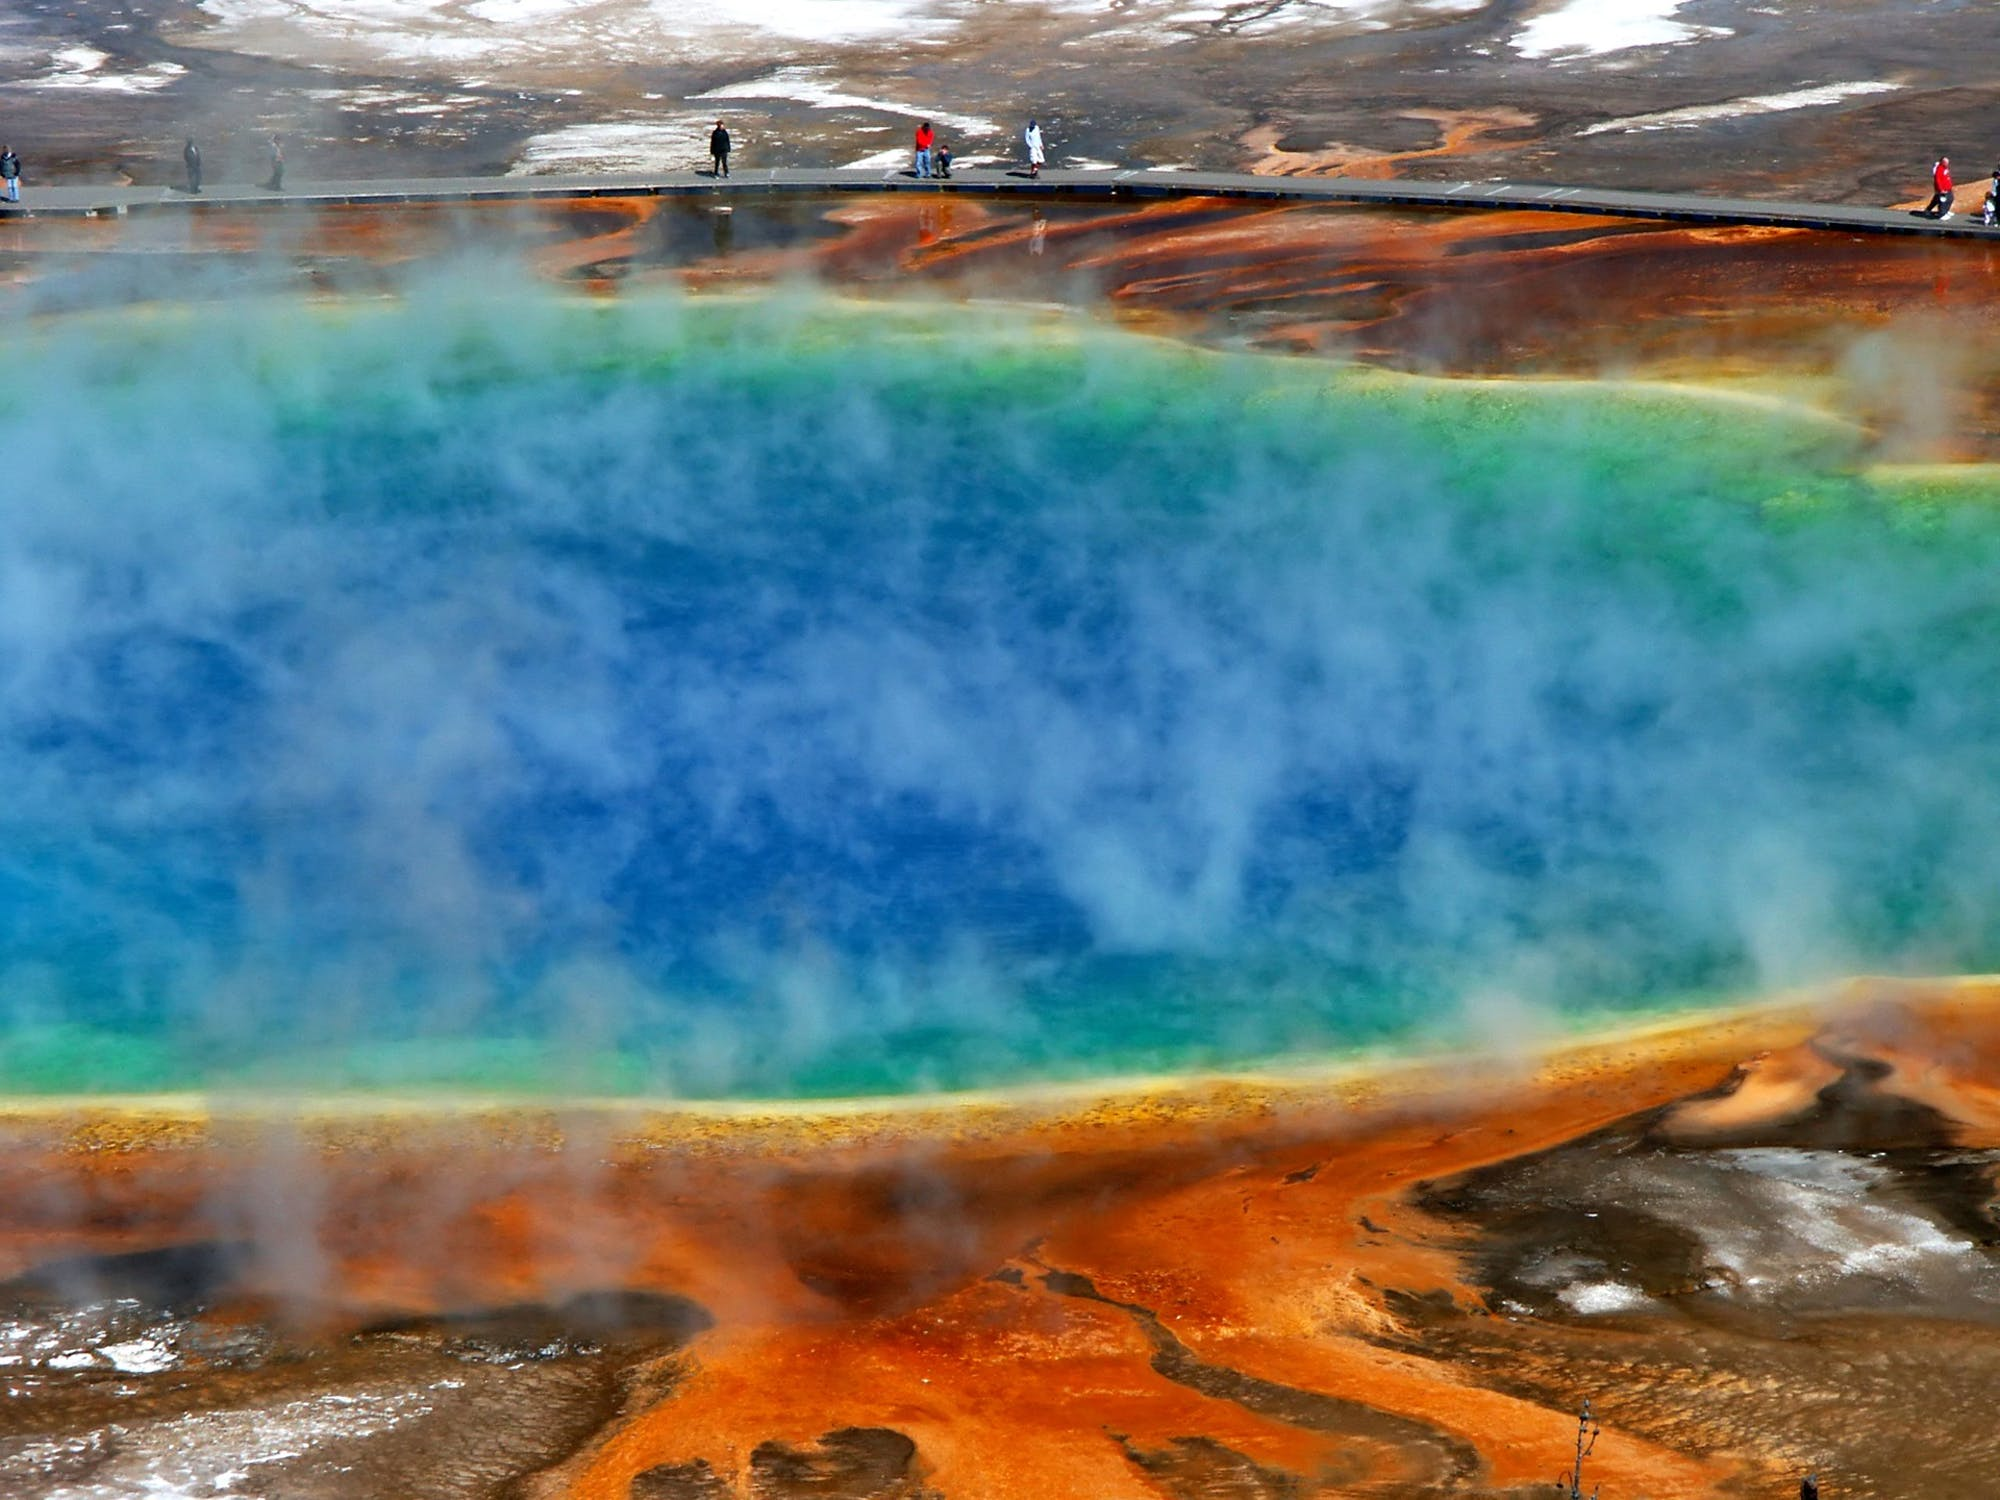 Best Vacation Spots in the United States, The Yellowstone National Park